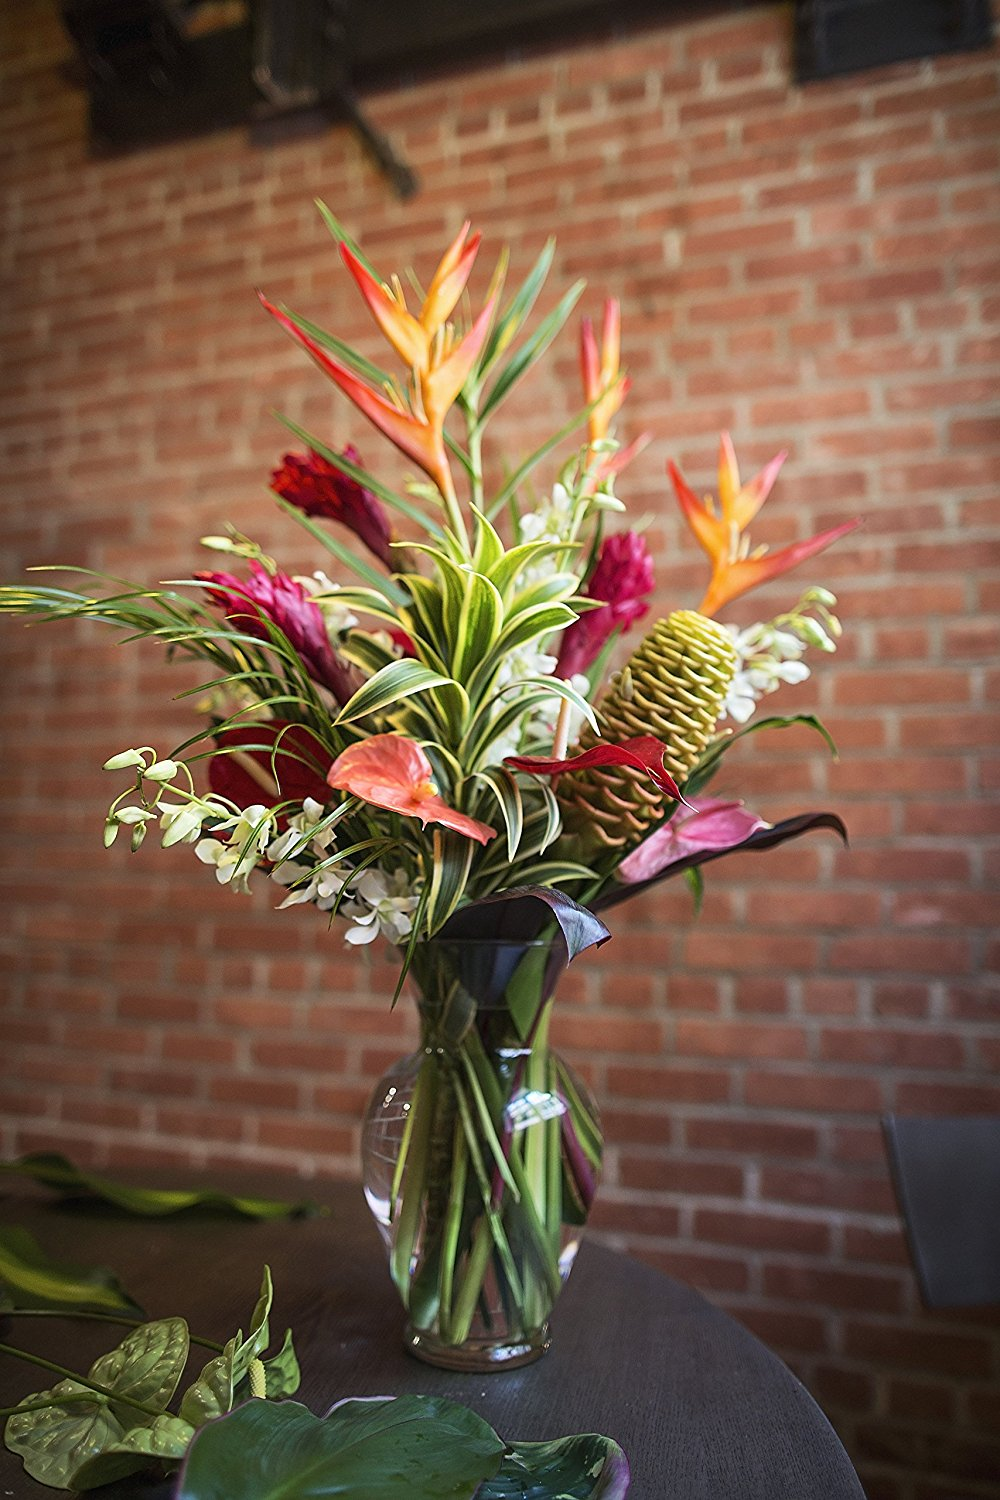 10 Best Options for Flower Delivery in Perth - Flower ...